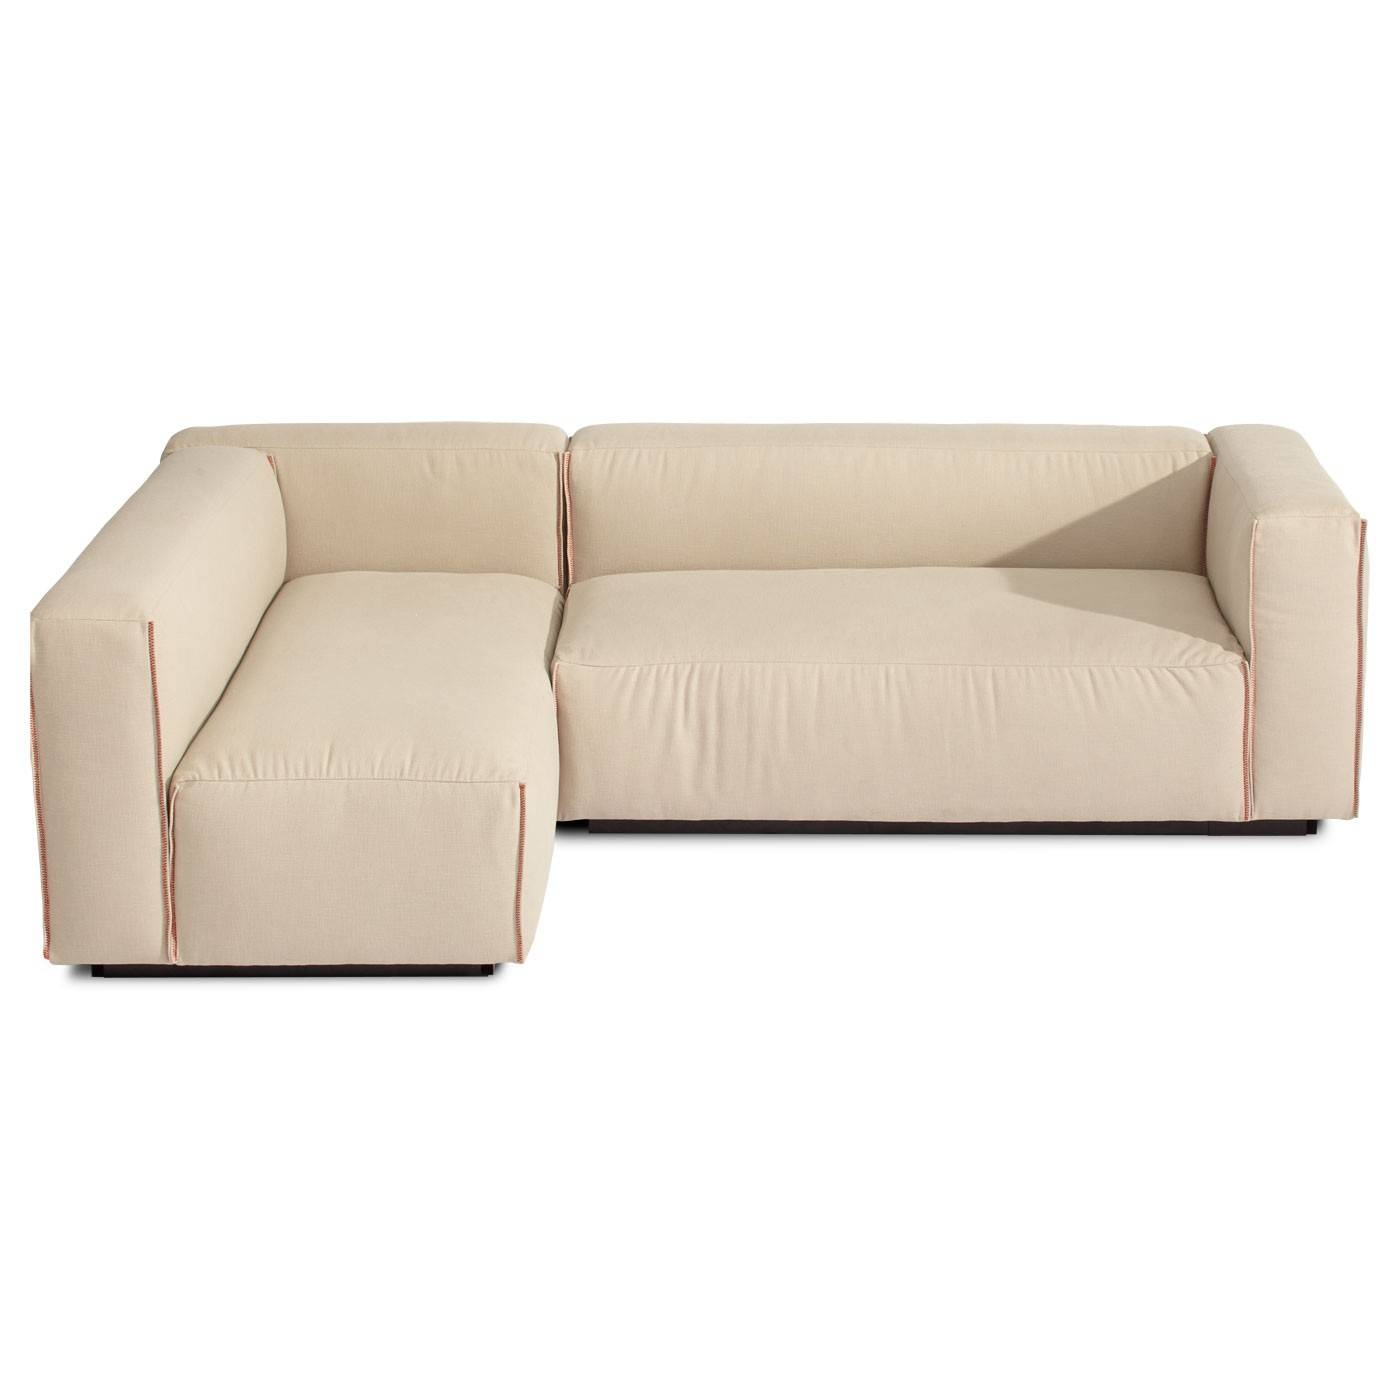 Modern Small Sofa with regard to Small Sectional Sofas For Small Spaces (Image 14 of 25)